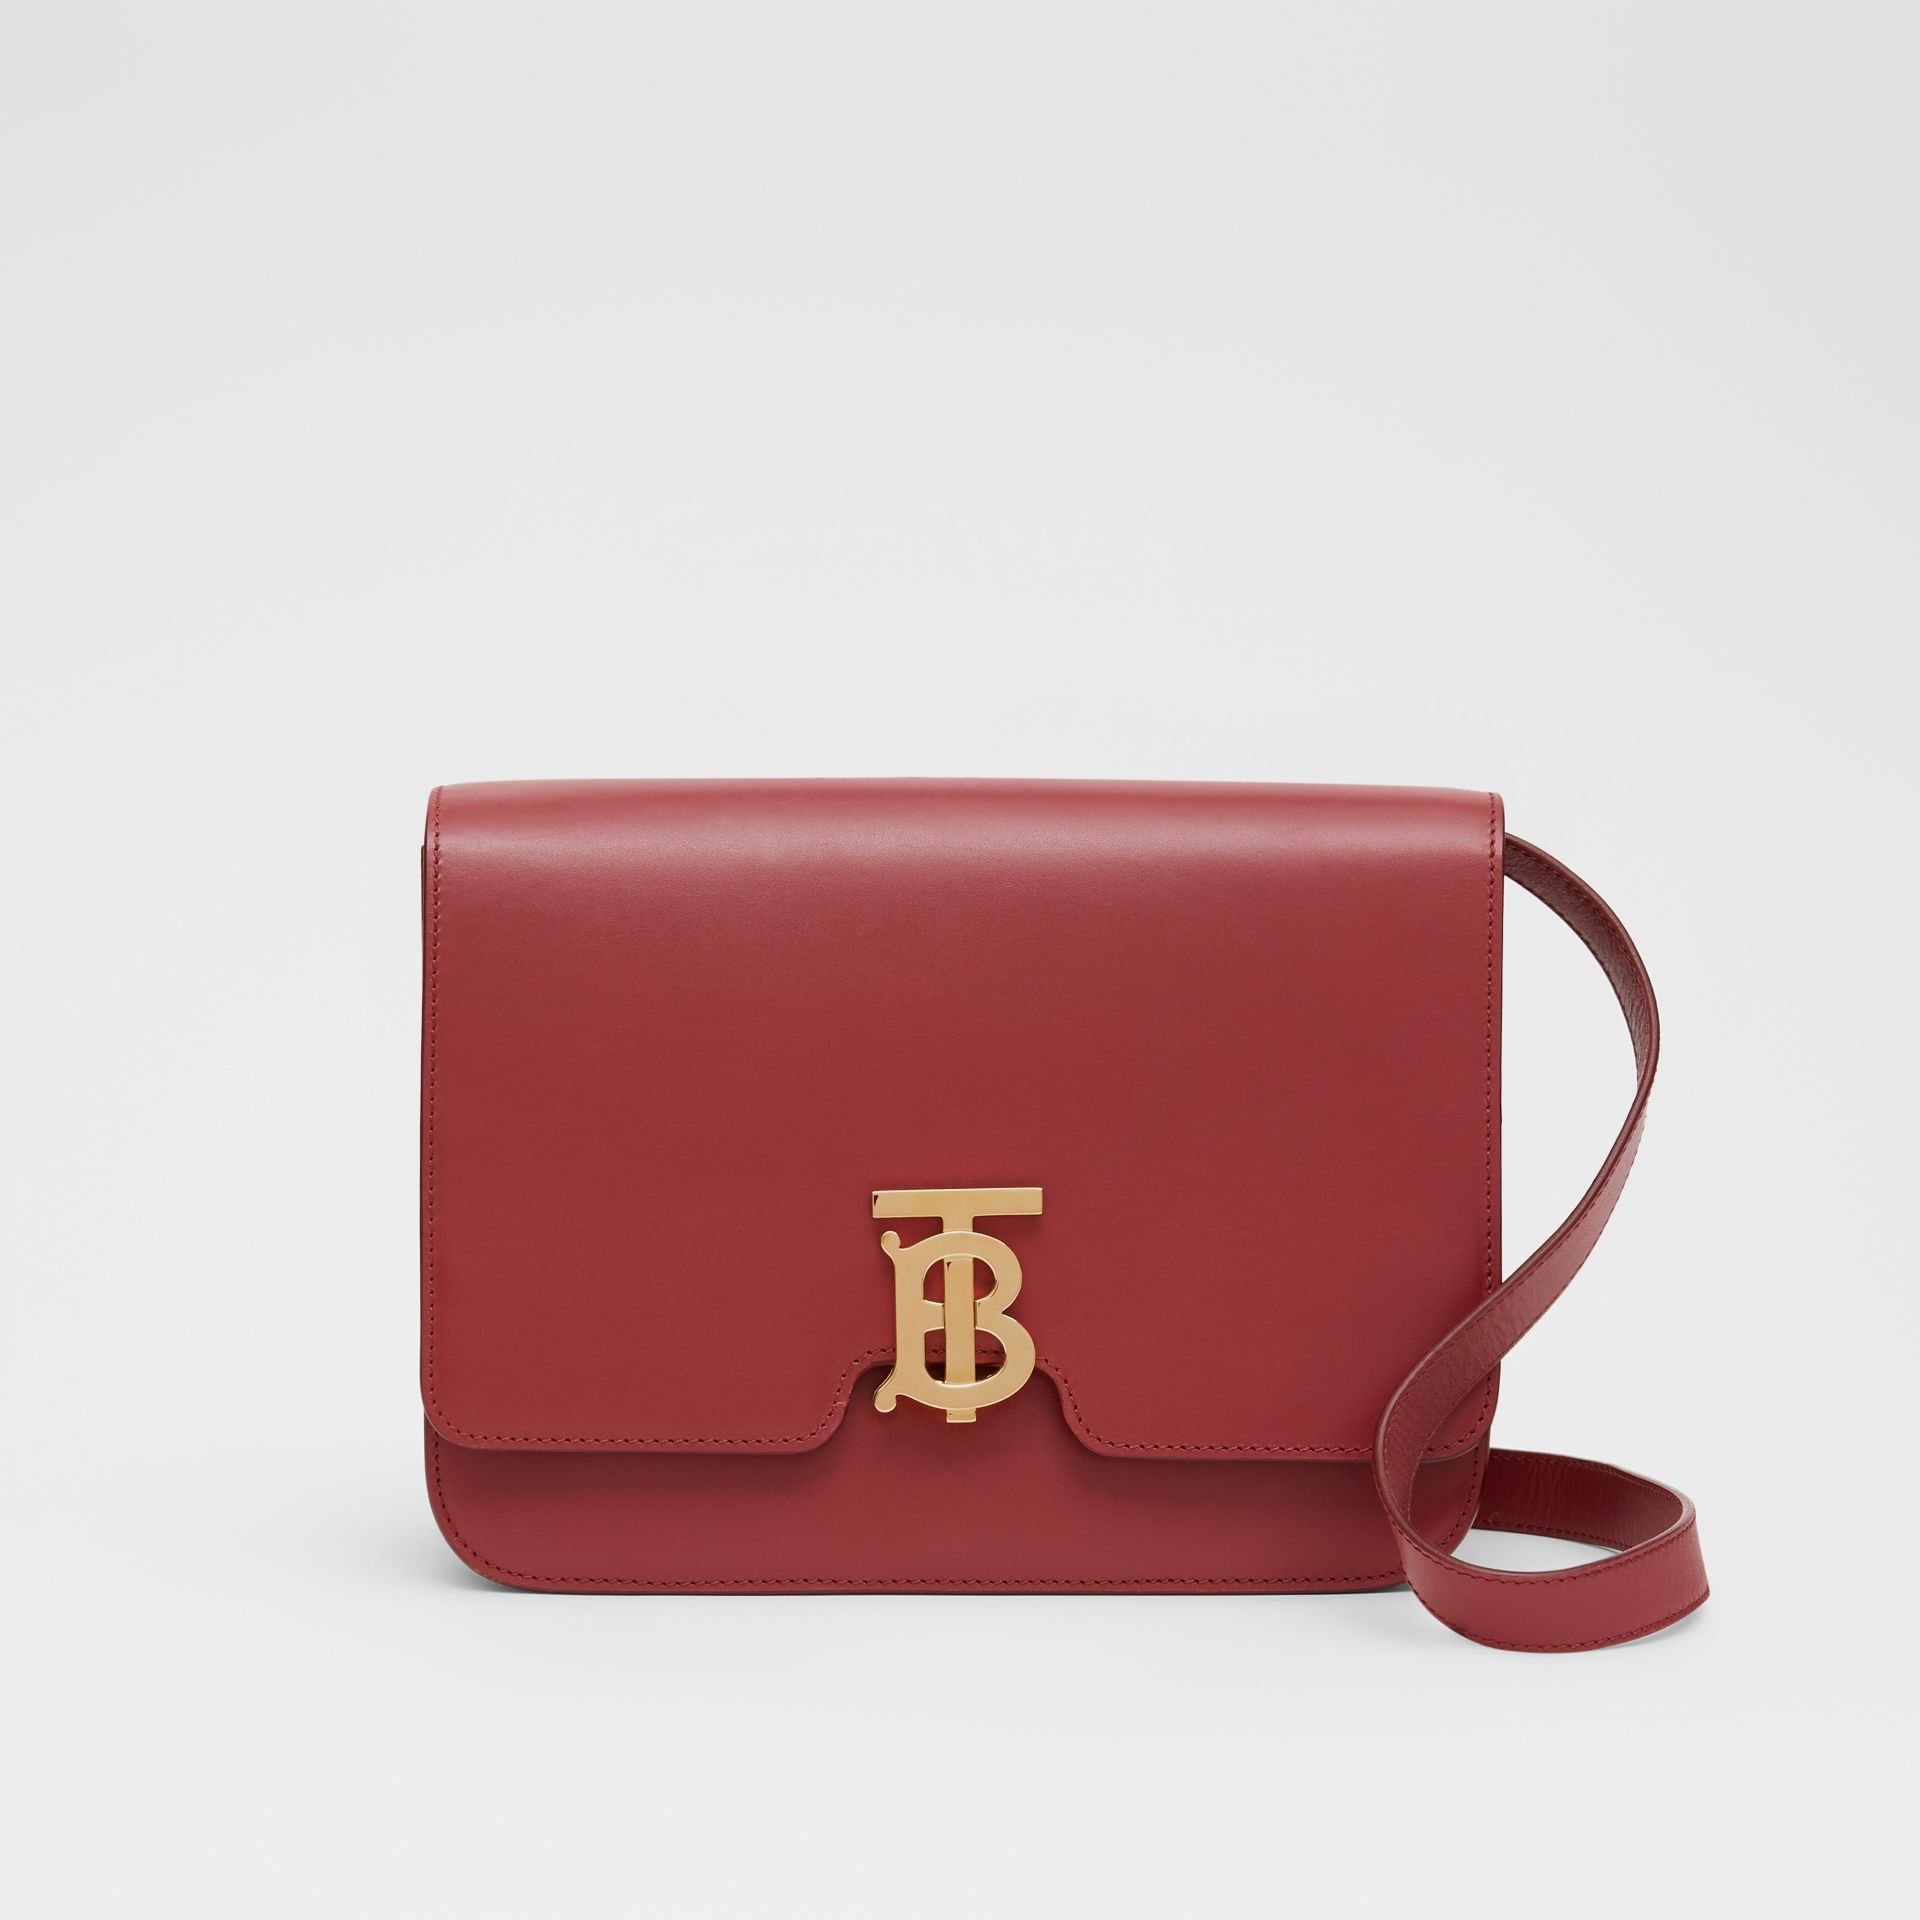 Medium Leather TB Bag in Crimson - Women | Burberry Hong Kong - gallery image 0